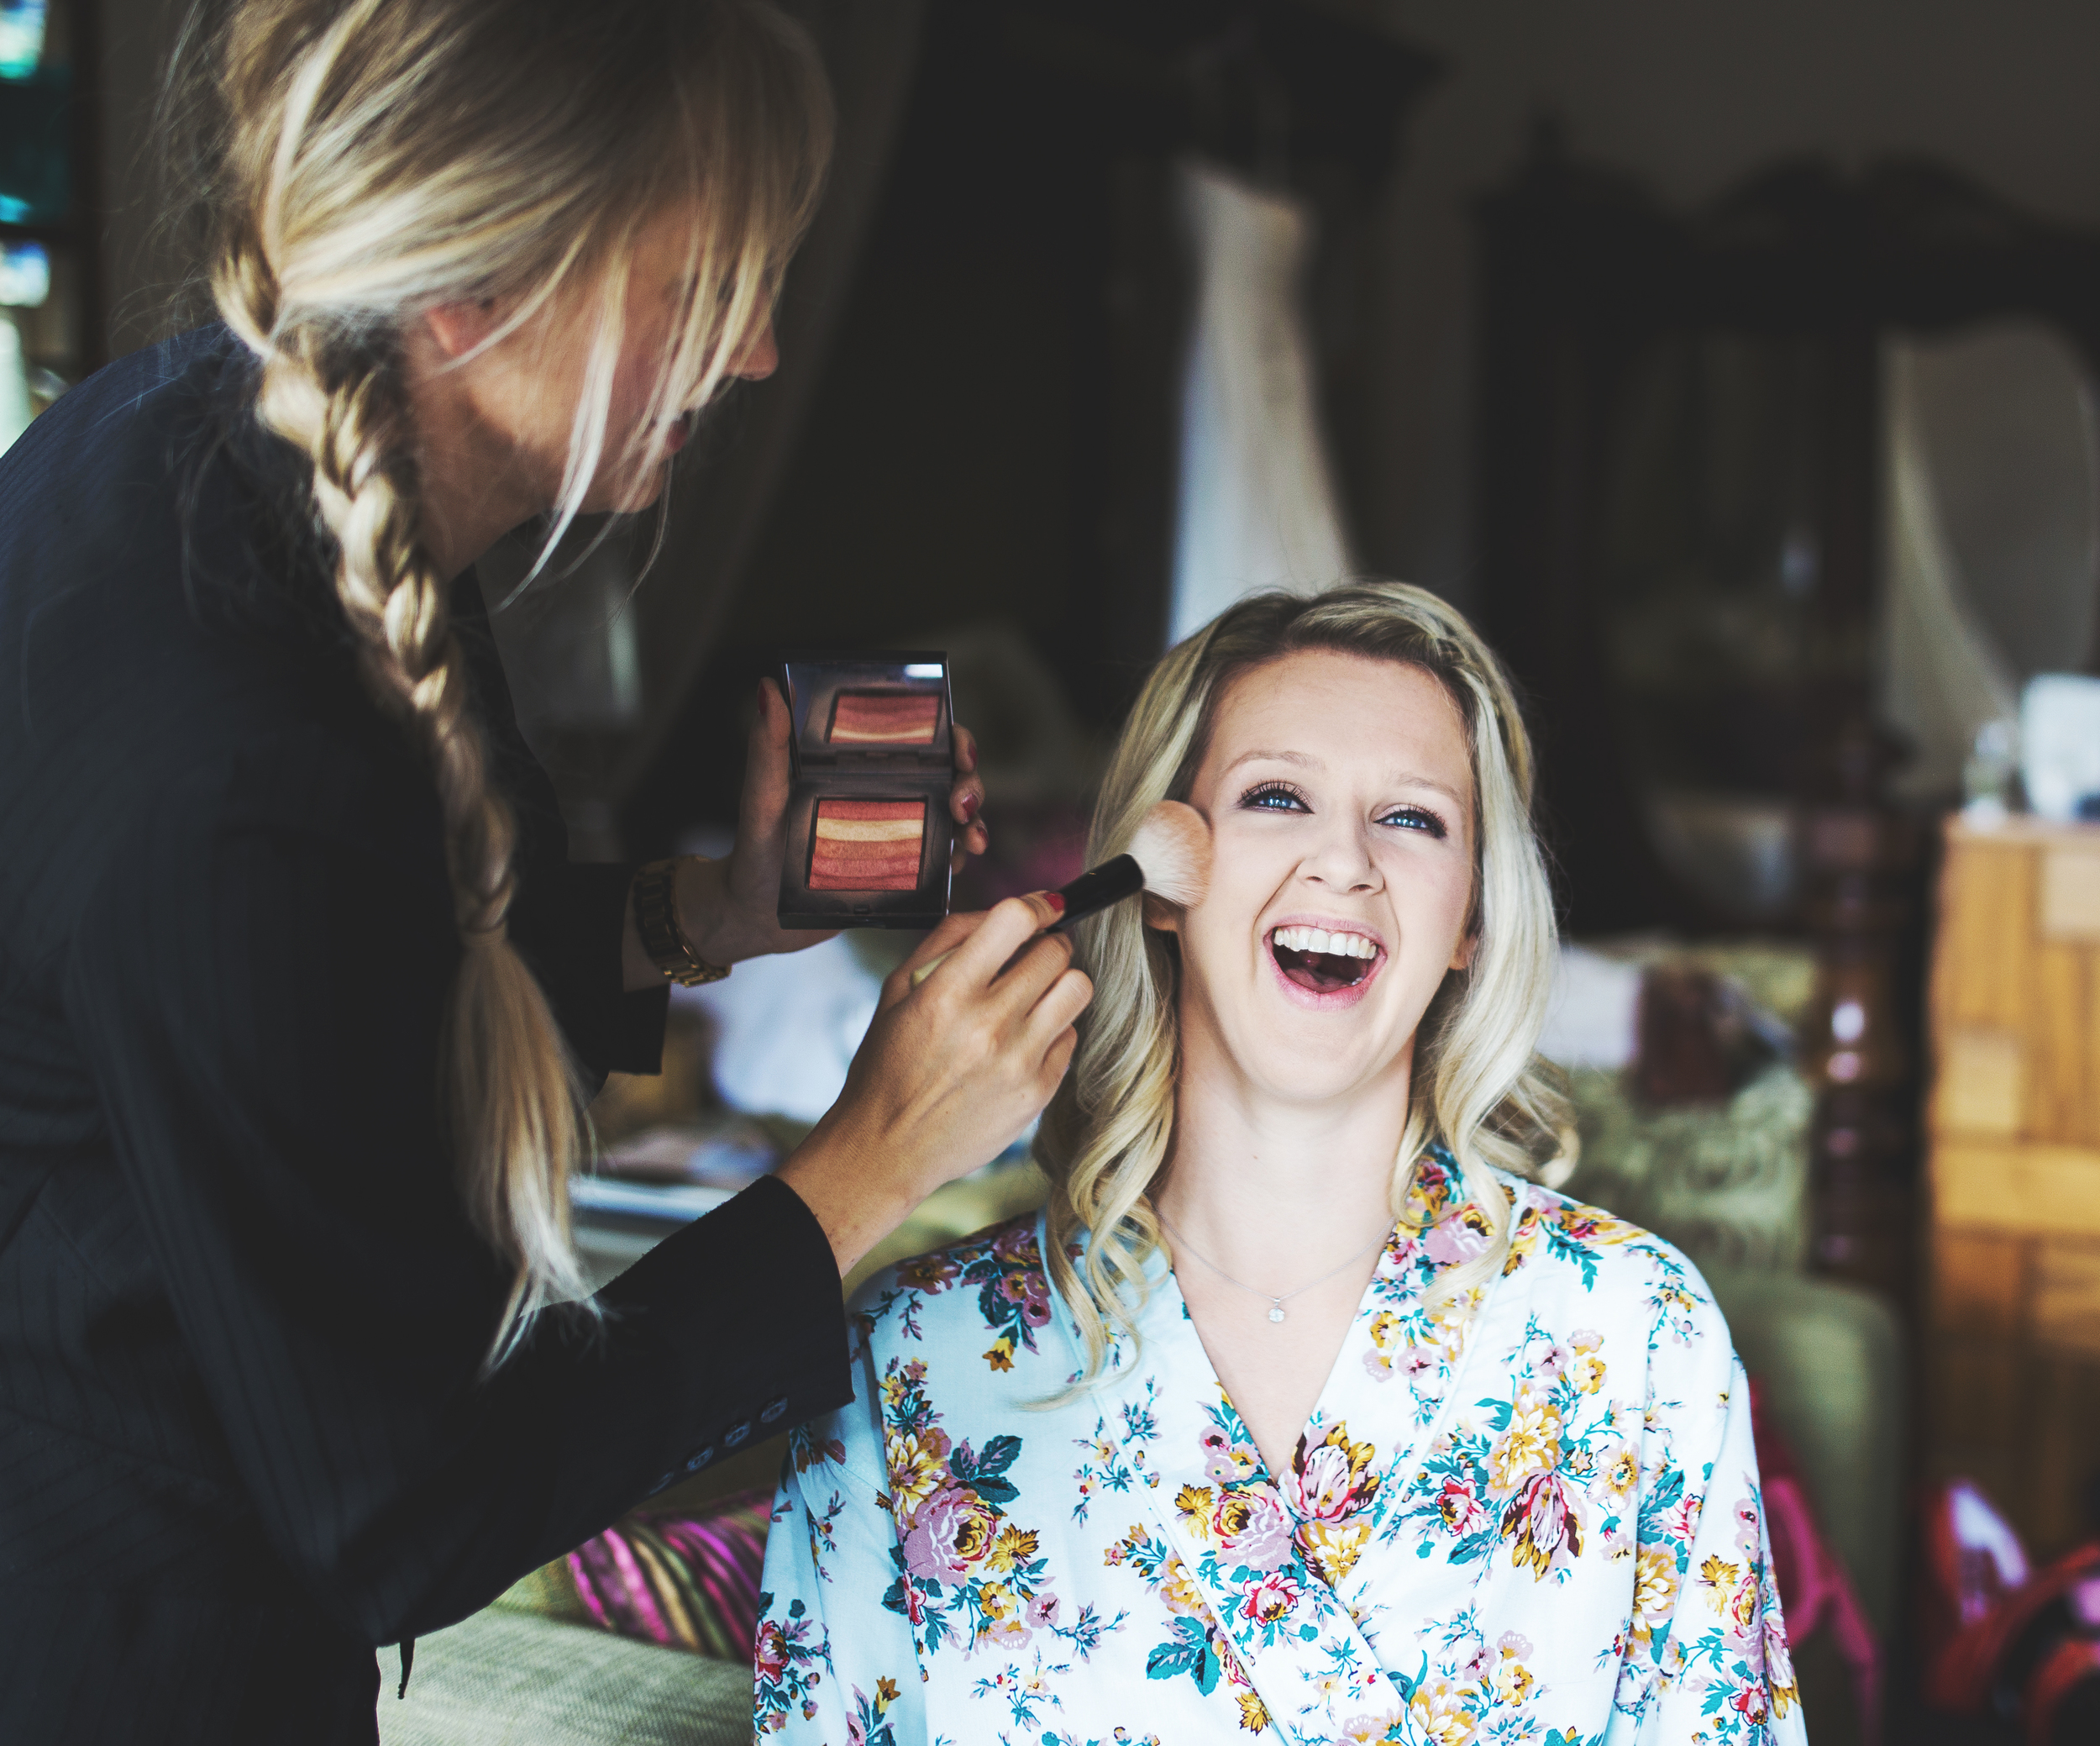 make up getting done - smiling bride